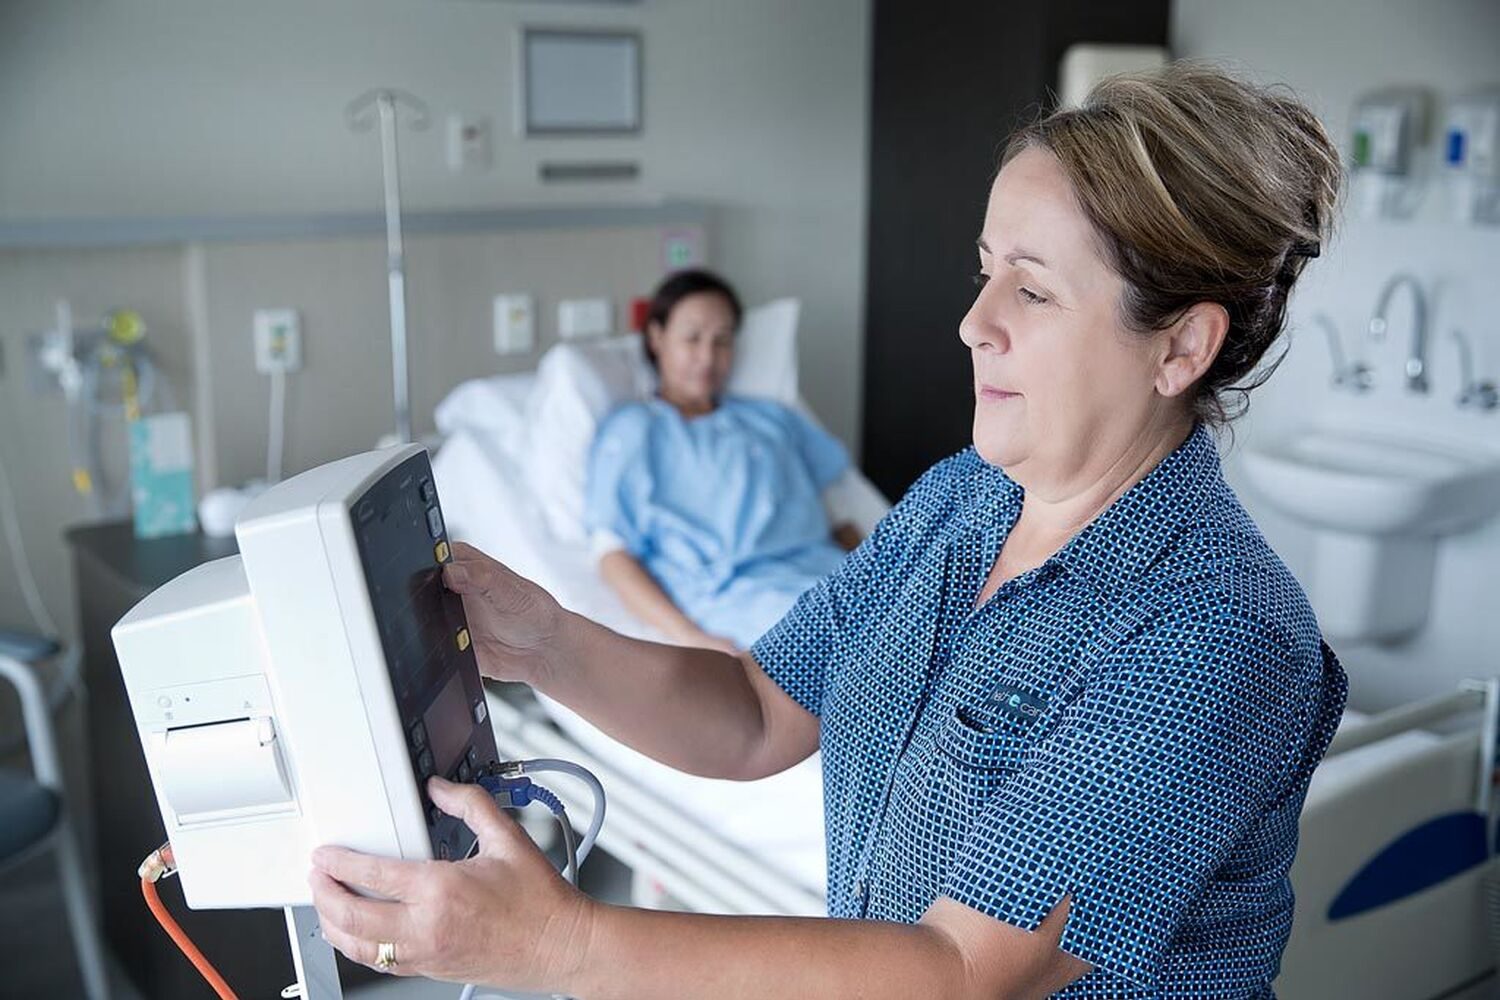 Surg Lng Nurse Checking Monitor